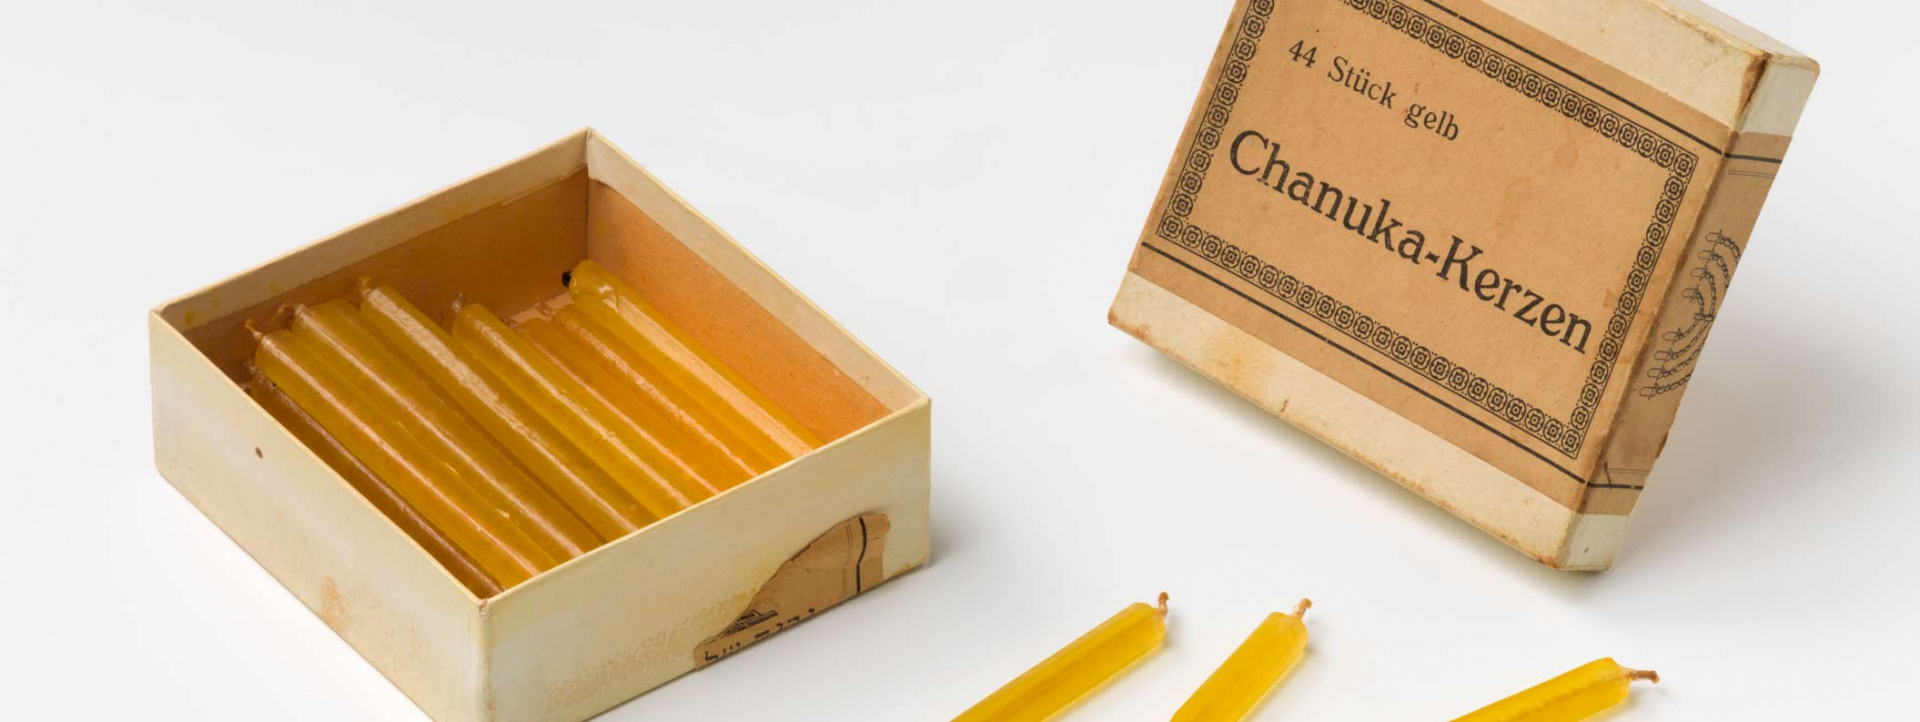 An opened box of Chanukka tapers